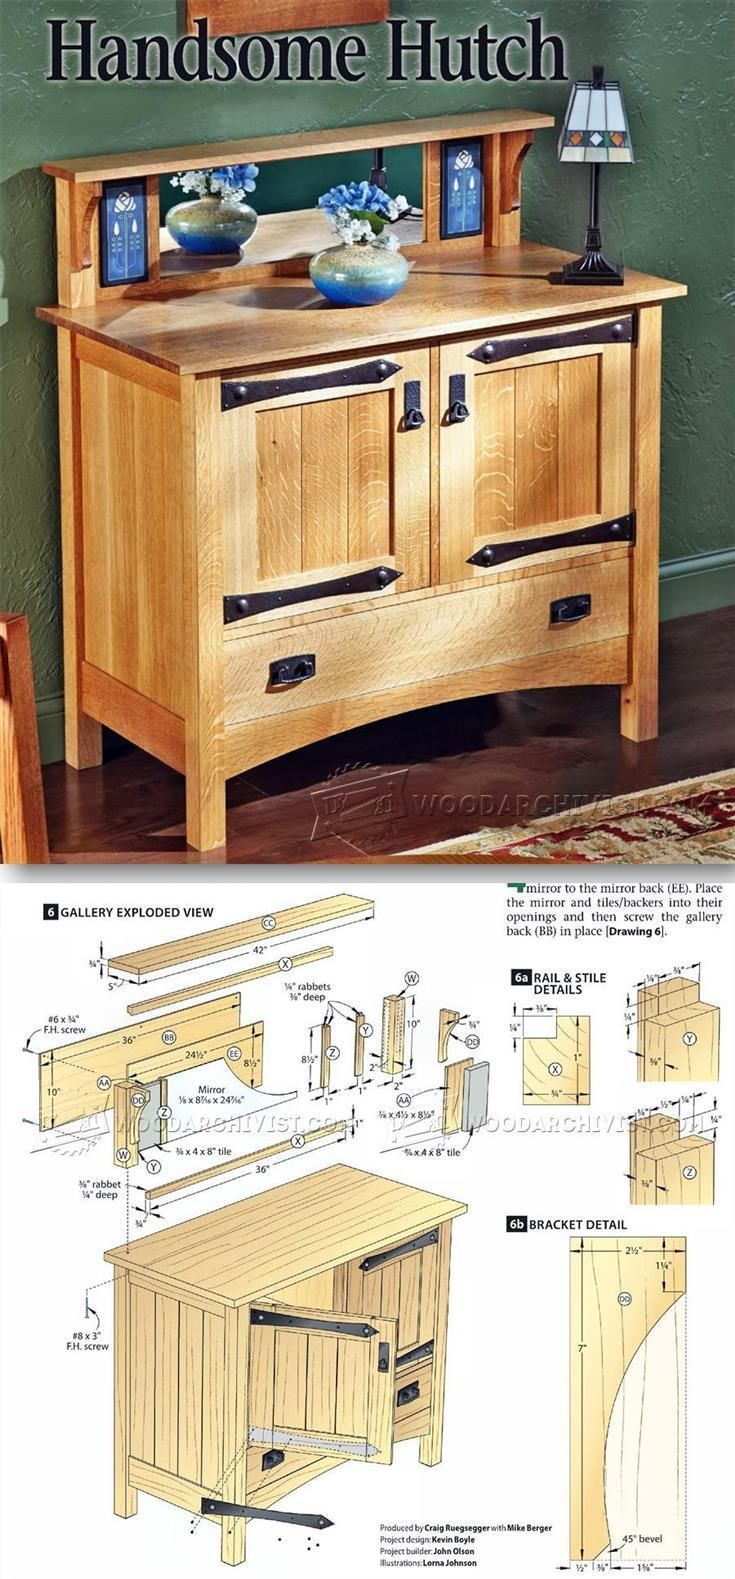 Mission style furniture plans - Mission Hutch Plans Furniture Plans And Projects Woodwork Woodworking Woodworking Plans Woodworking Projects